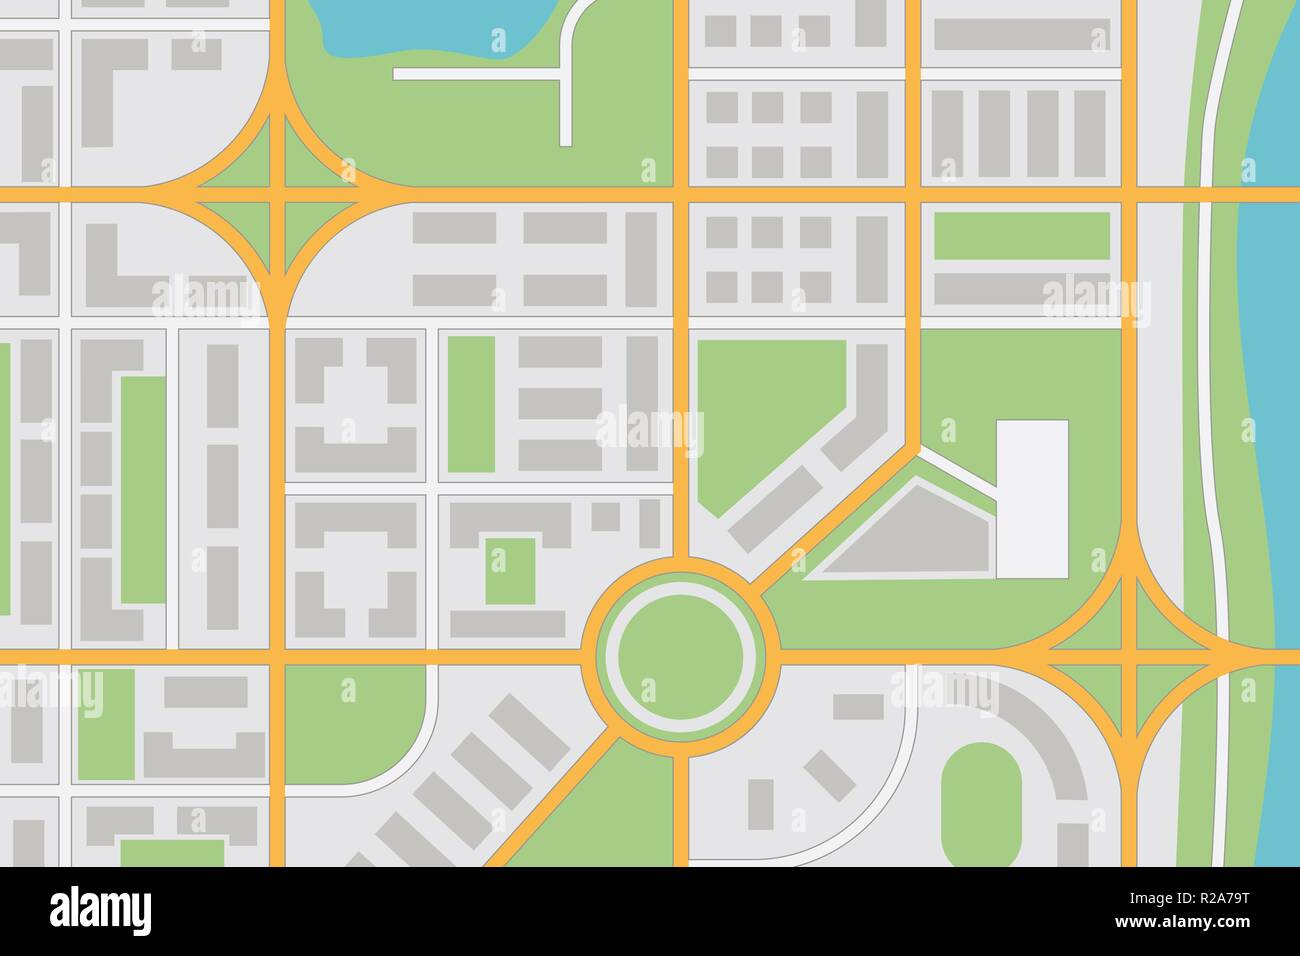 City map - Stock Vector